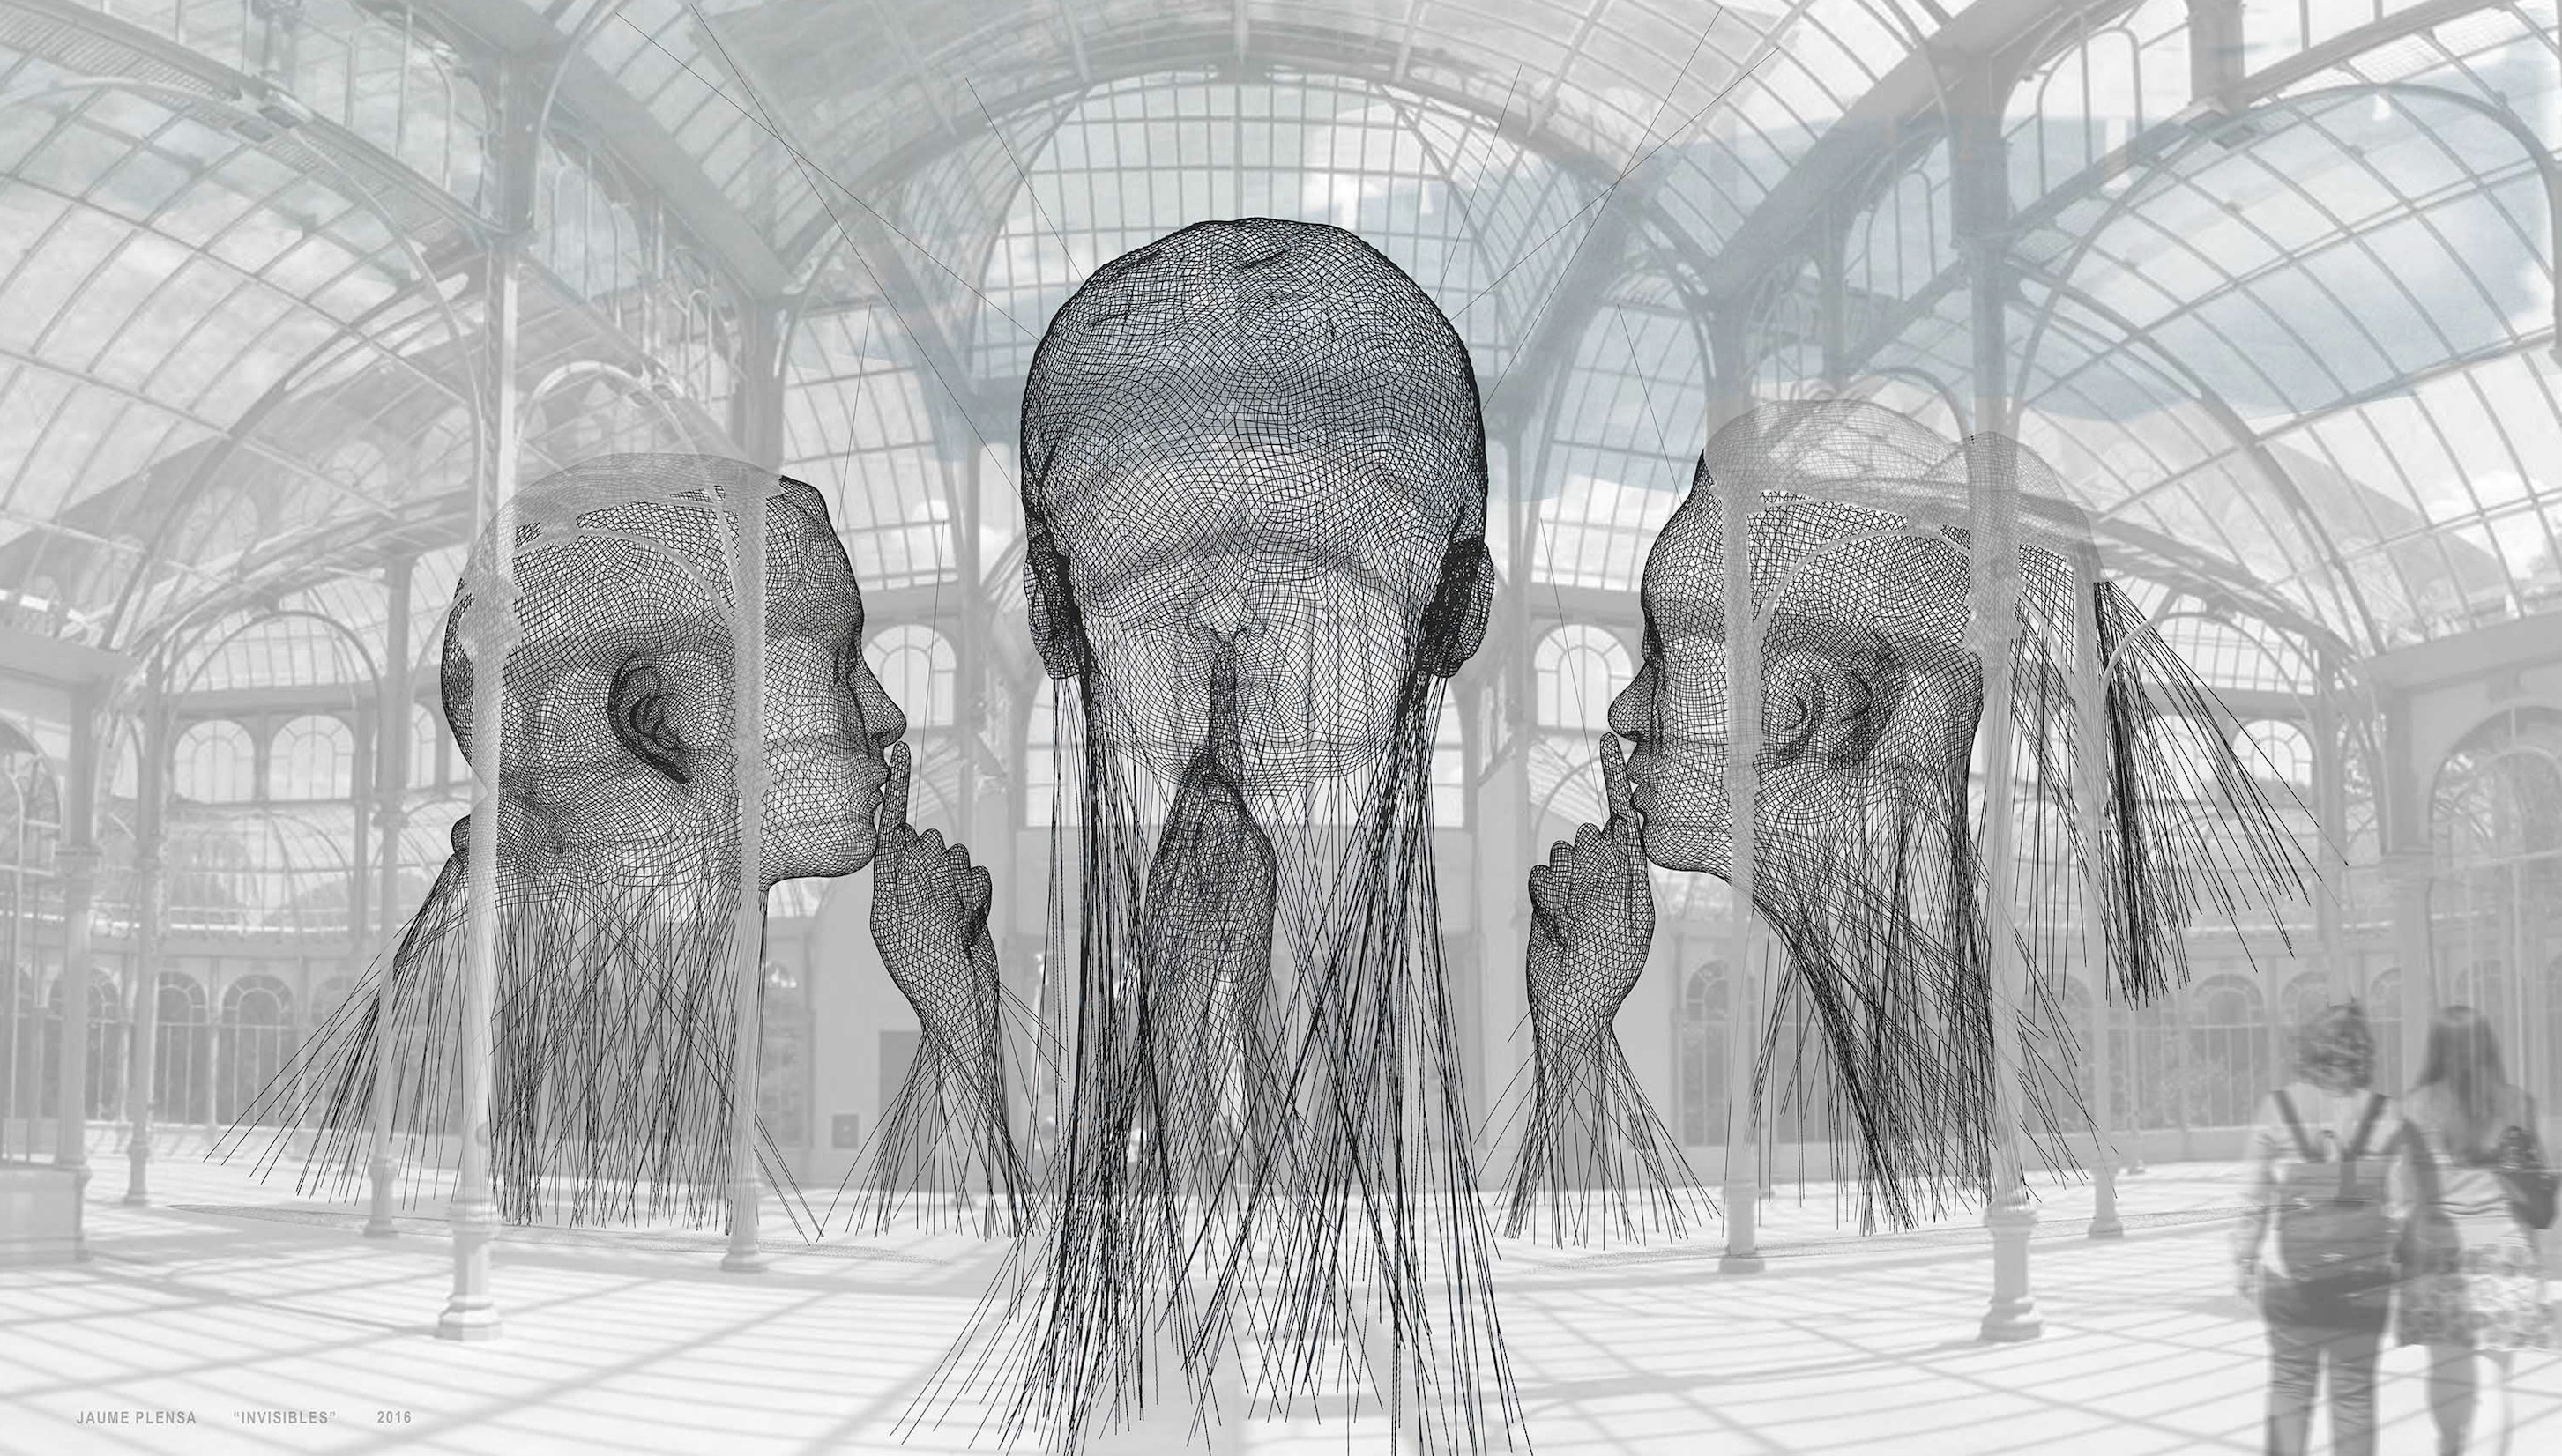 Jaume Plensa. Invisibles